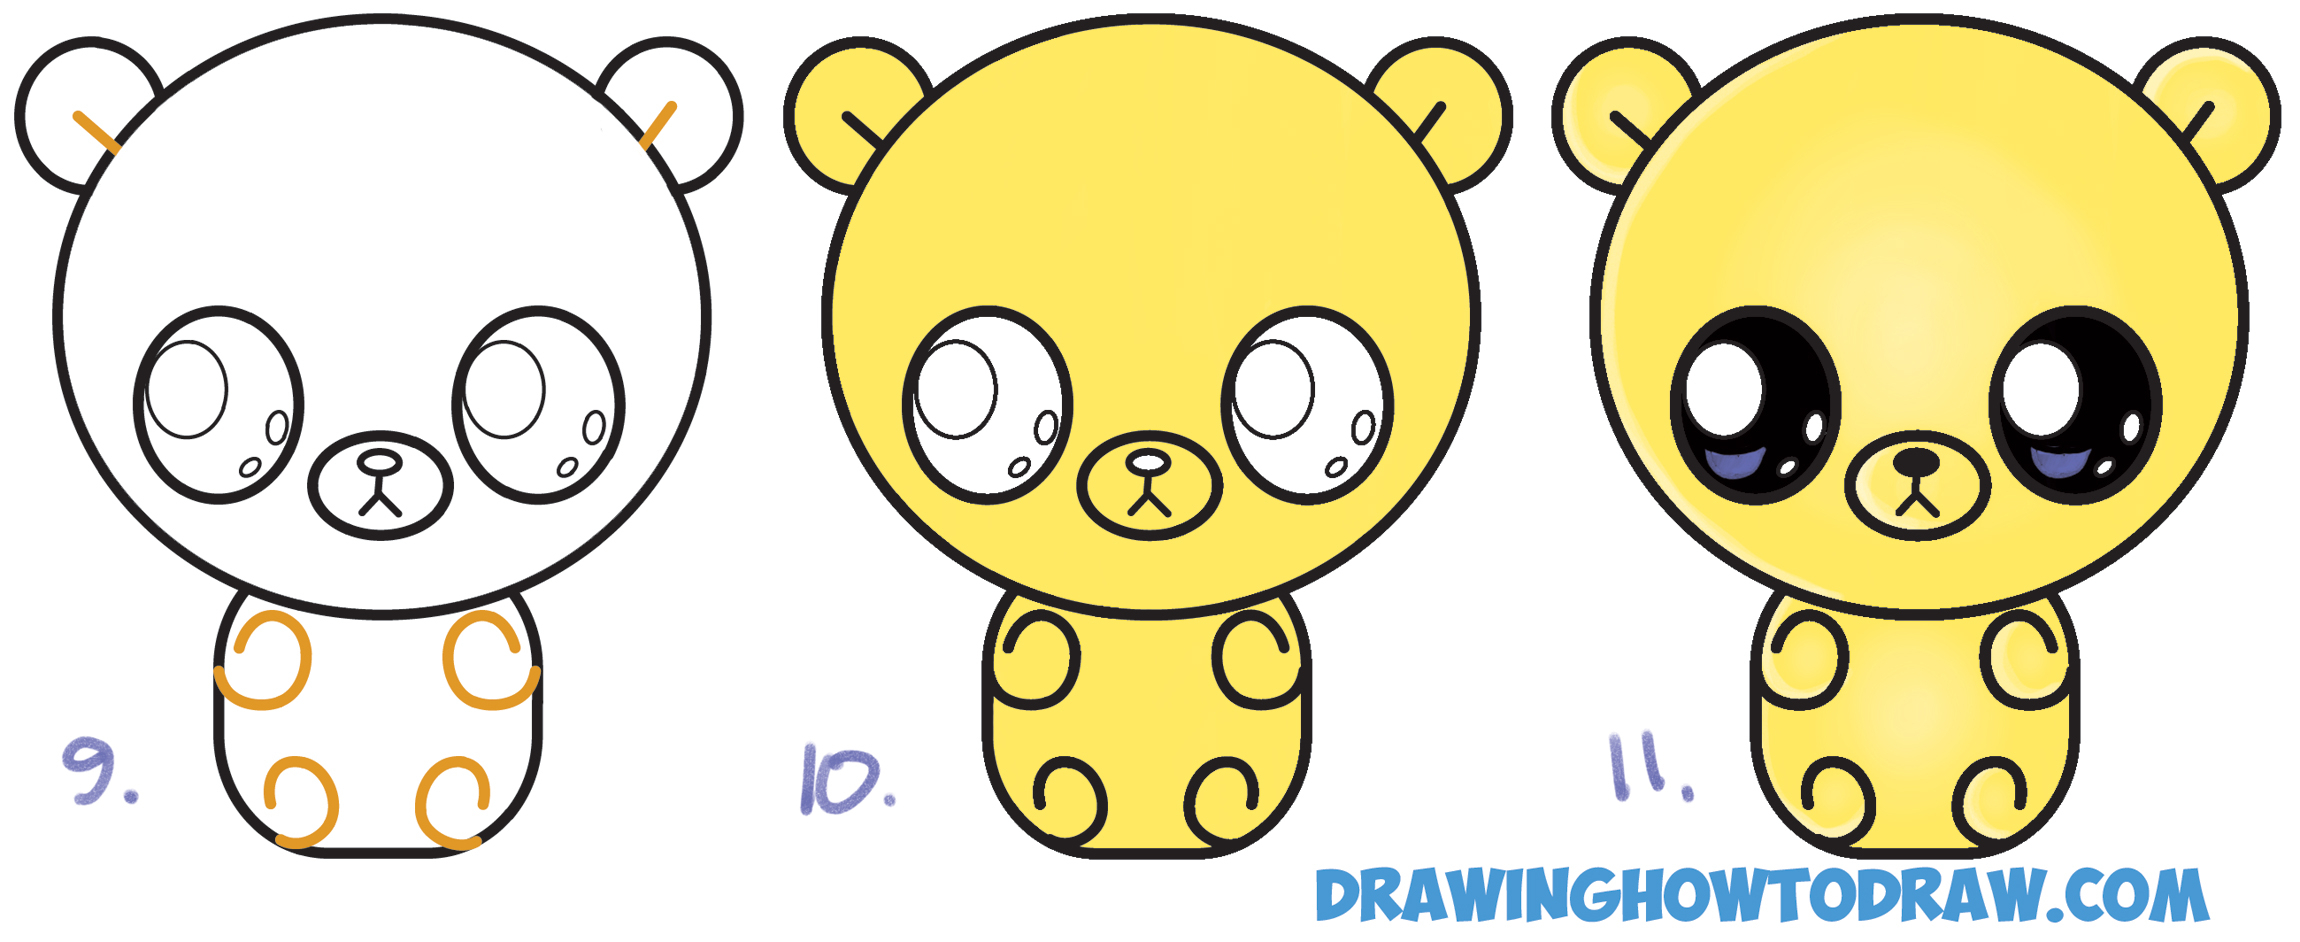 2300x942 Drawing Of A Gummy Bear How To Draw A Cute Chibi Kawaii